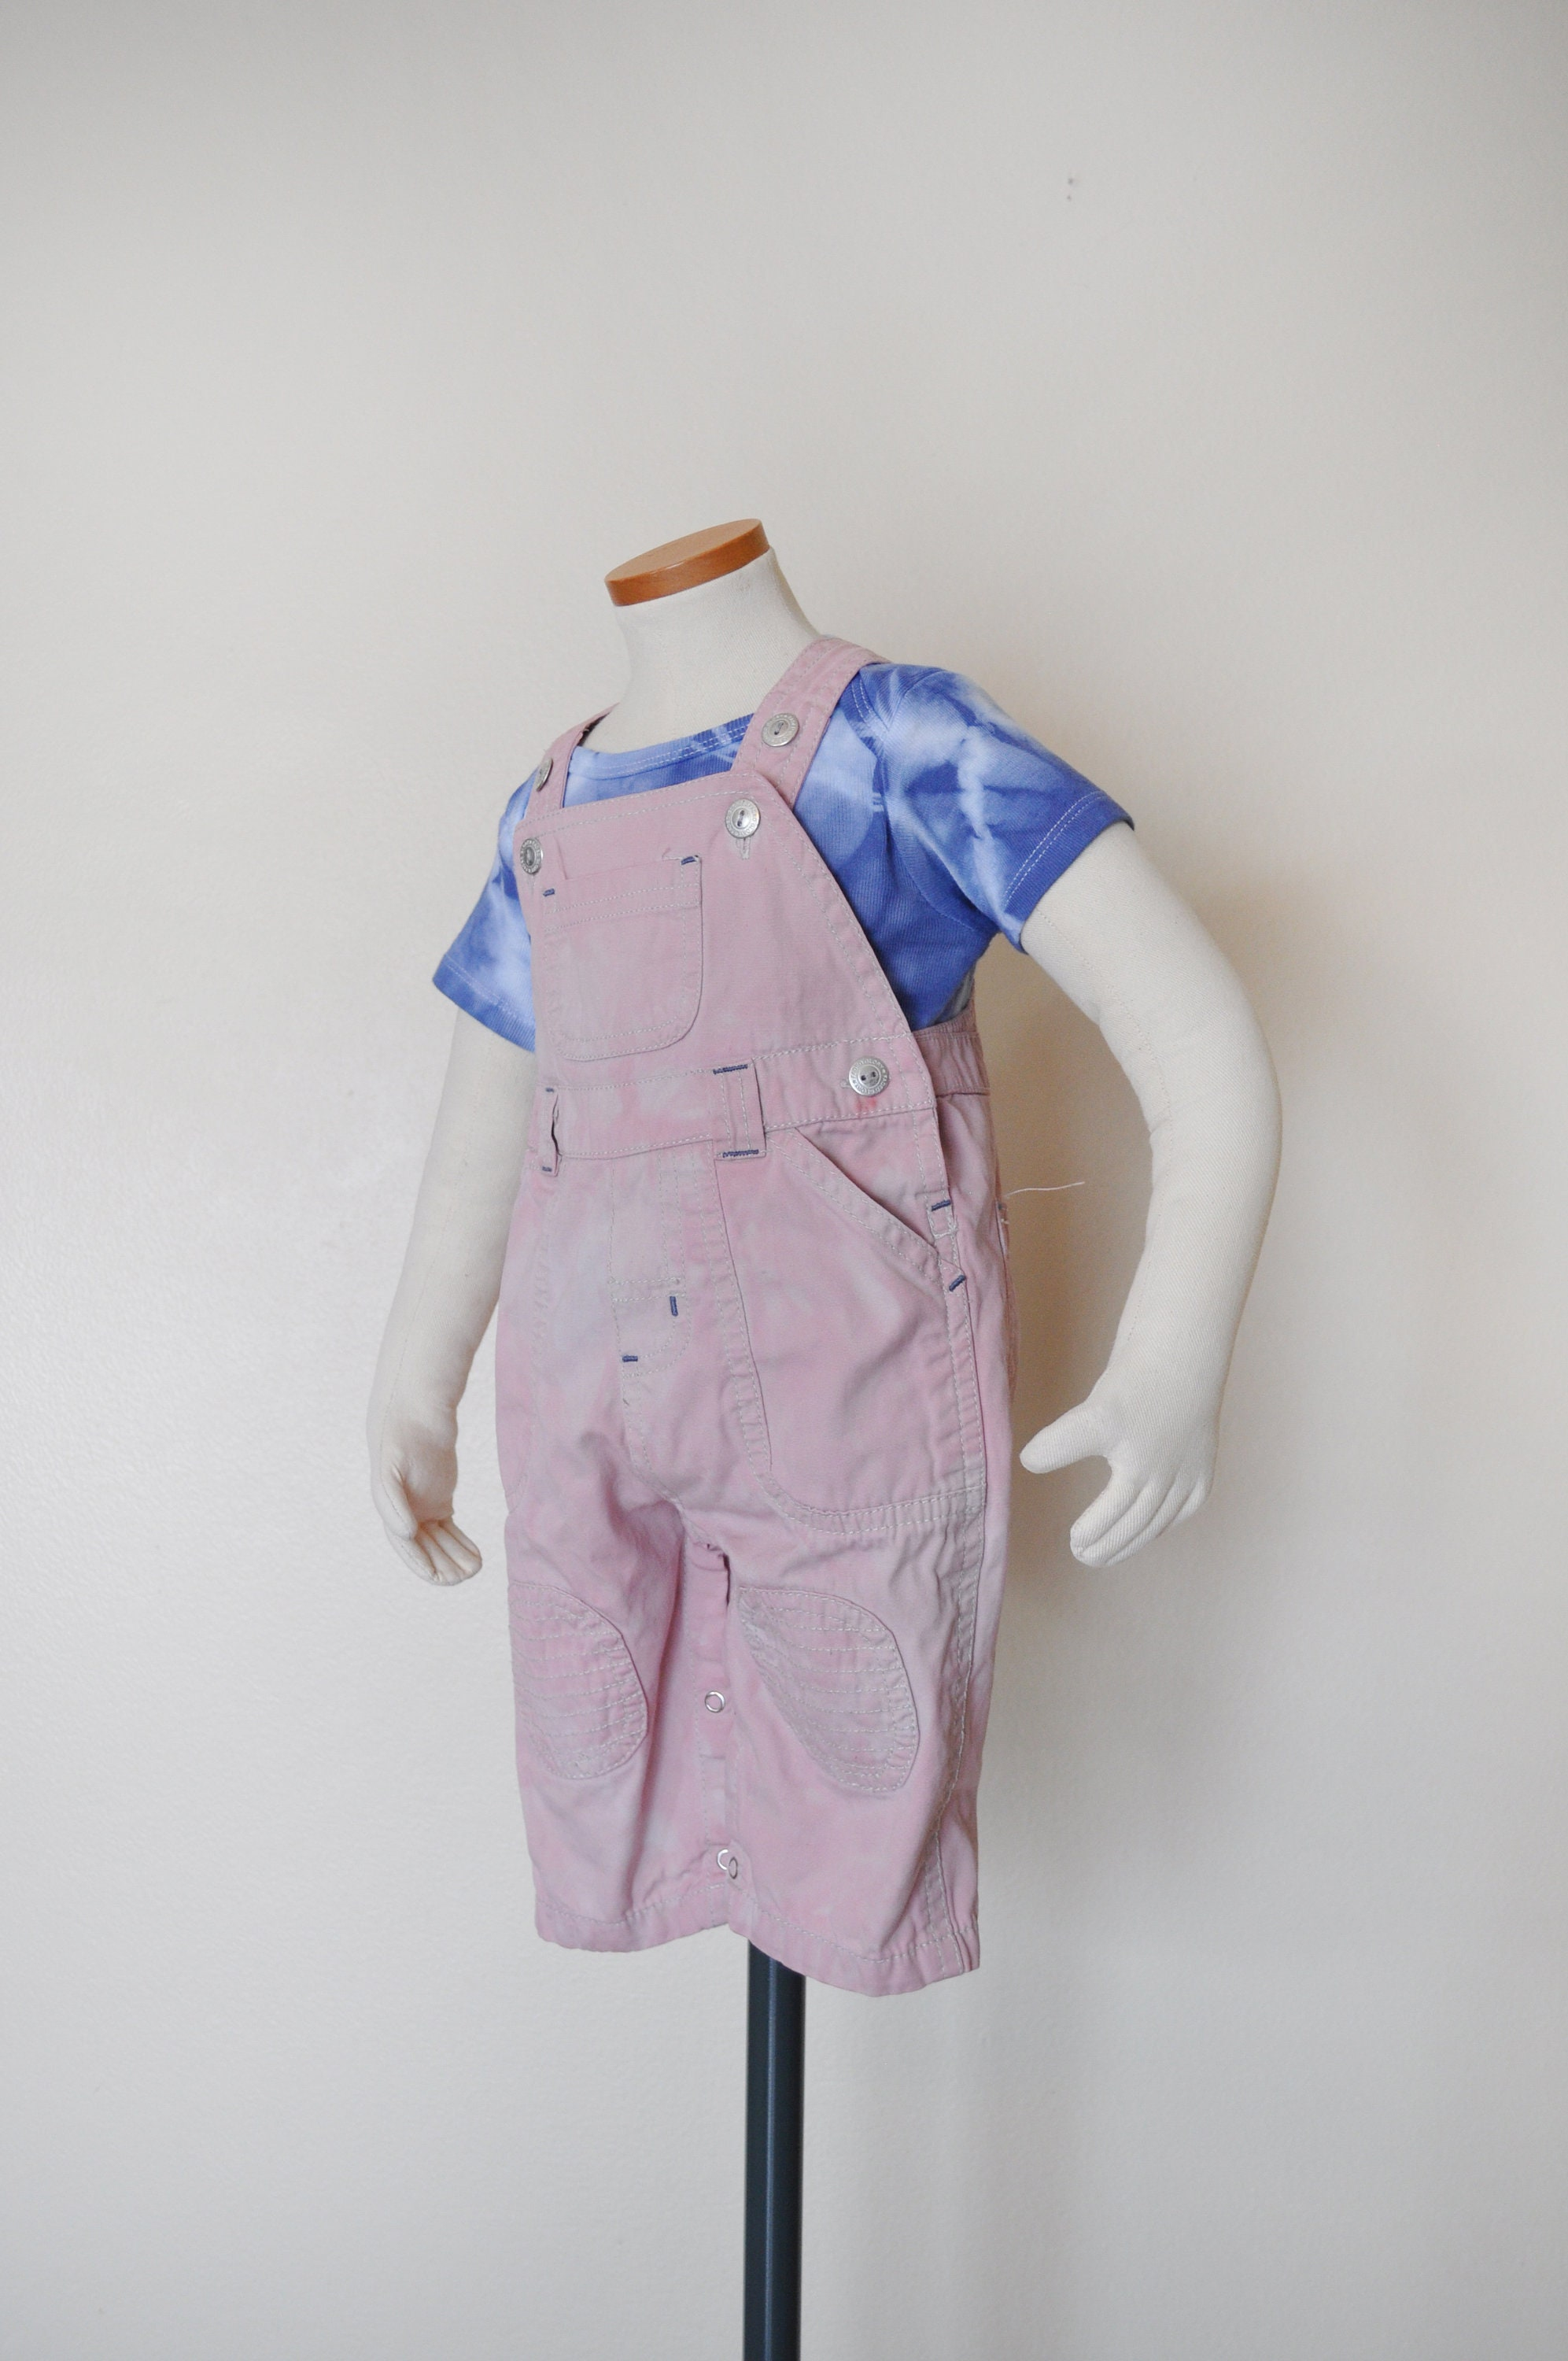 Vintage Overalls & Jumpsuits Pink Kids 36 Mo Bib Overall Pants - Pale Dyed Children Faded Glory Cotton Overalls Baby Infant Child Size Months  20W X 6 L $25.00 AT vintagedancer.com